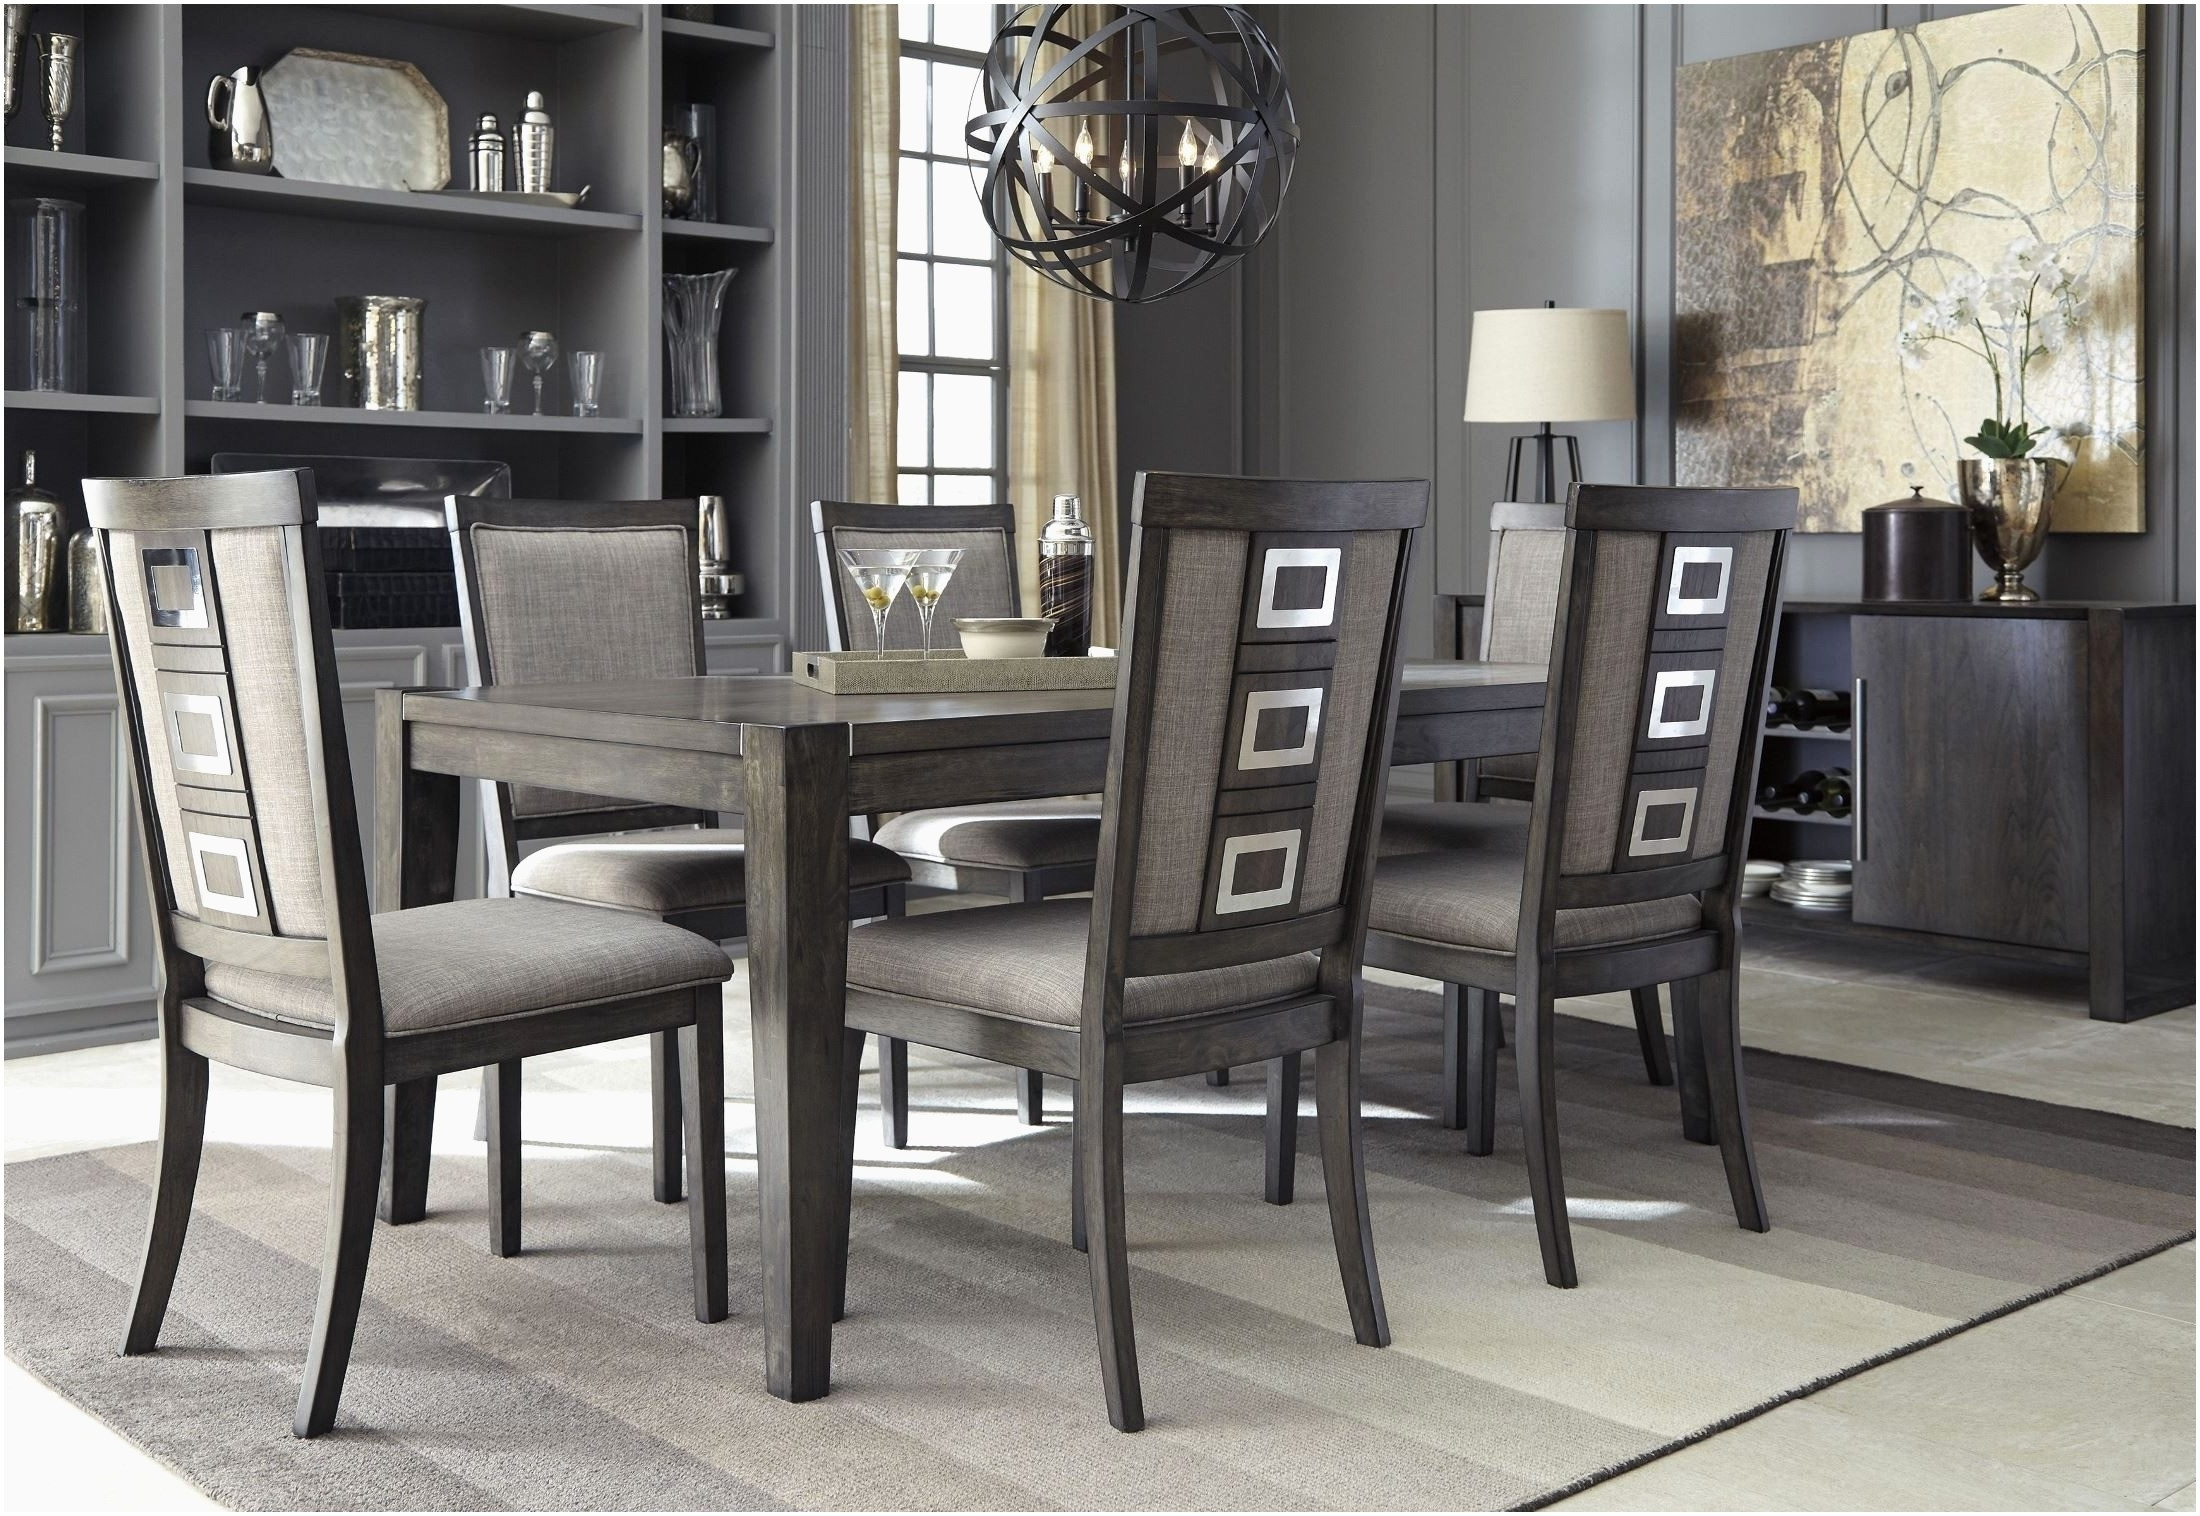 Engaging Grand Dining Room At Chapleau Extension Dining Table throughout Favorite Chapleau Extension Dining Tables